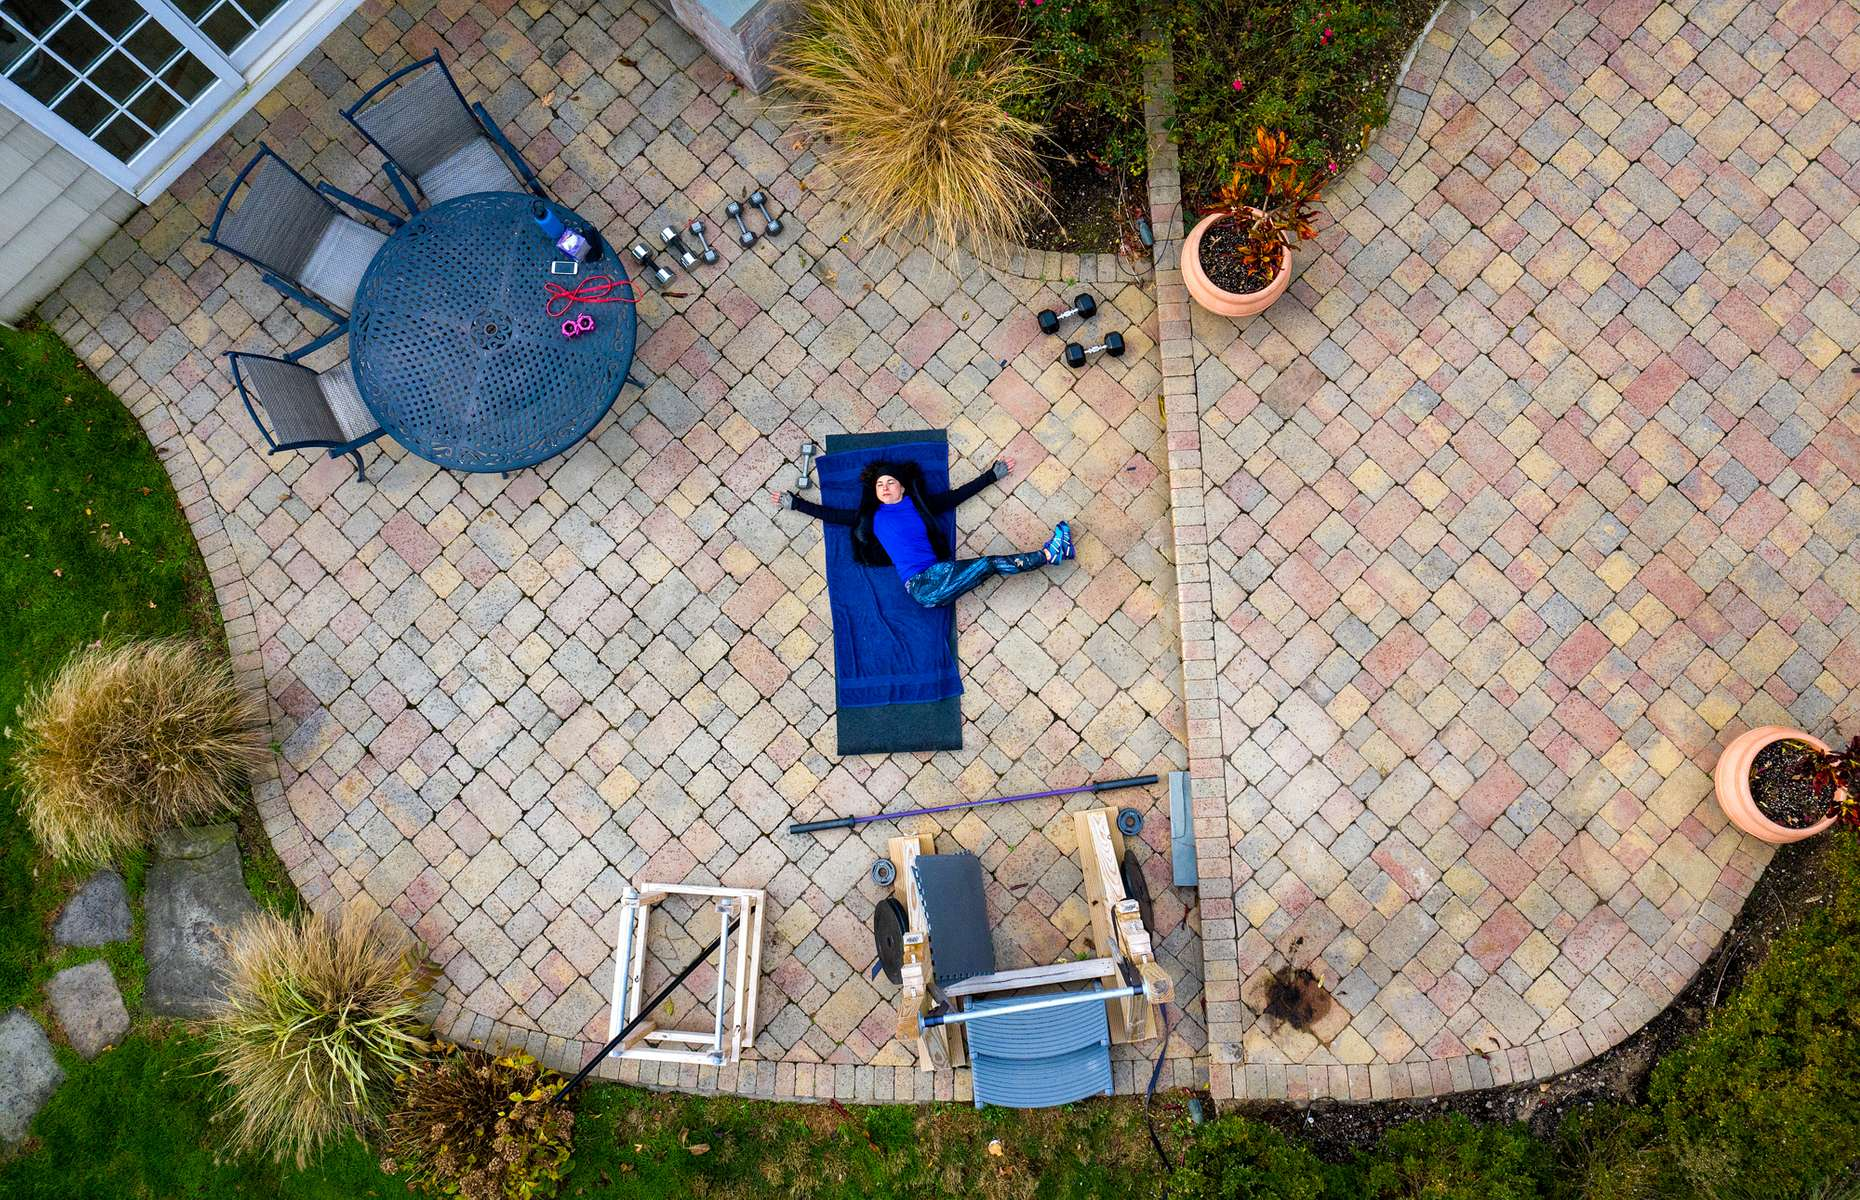 An aerial view of Debbie Krueger exercising in her backyard with her virtual Fitness Trainer Dennis Guerrero on November 17th, 2020 in Hewlett Harbor, New York.  In March of 2014, Dennis Guerrero and his business partner opened a gym on Long Island. The pair shared a passion for fitness, a dream of creating a local community of like-minded people and a willingness to take a risk. Over the next six years, hundreds of members experienced and embraced a unique environment that fostered a palpable energy, helping athletes of all ages and abilities reach their potential.  The gym became a place to share achievements, work through losses and overcome illness. But like so many other businesses, it seemingly had no way of overcoming the financial impact and ongoing uncertainty of a global pandemic. With the arrival of Covid-19, the gym shut its doors back in March, with no idea when it would reopen. The owners, though, were far from done. They lent out every piece of equipment they owned to the gym's members, continued to pay their staff and worked to set up outdoor classes in hopes of keeping their membership active and healthy. As the shutdown stretched on, it became clear that the physical gym was closed for good.  They have since reinvented themselves and are now called Life Outside the Box.  Their business model has changed drastically, and all their workouts have gone virtual.  The workouts are conducted by a small group of fitness trainers led by Guerrero.  The members pay a monthly fee and can take live Zoom fitness classes.  They are coached by the virtual trainers in real time.  More and more people have reconstructed their garages, spare rooms, backyards, and basements into home gyms since the COVID-19 pandemic hit the United States.